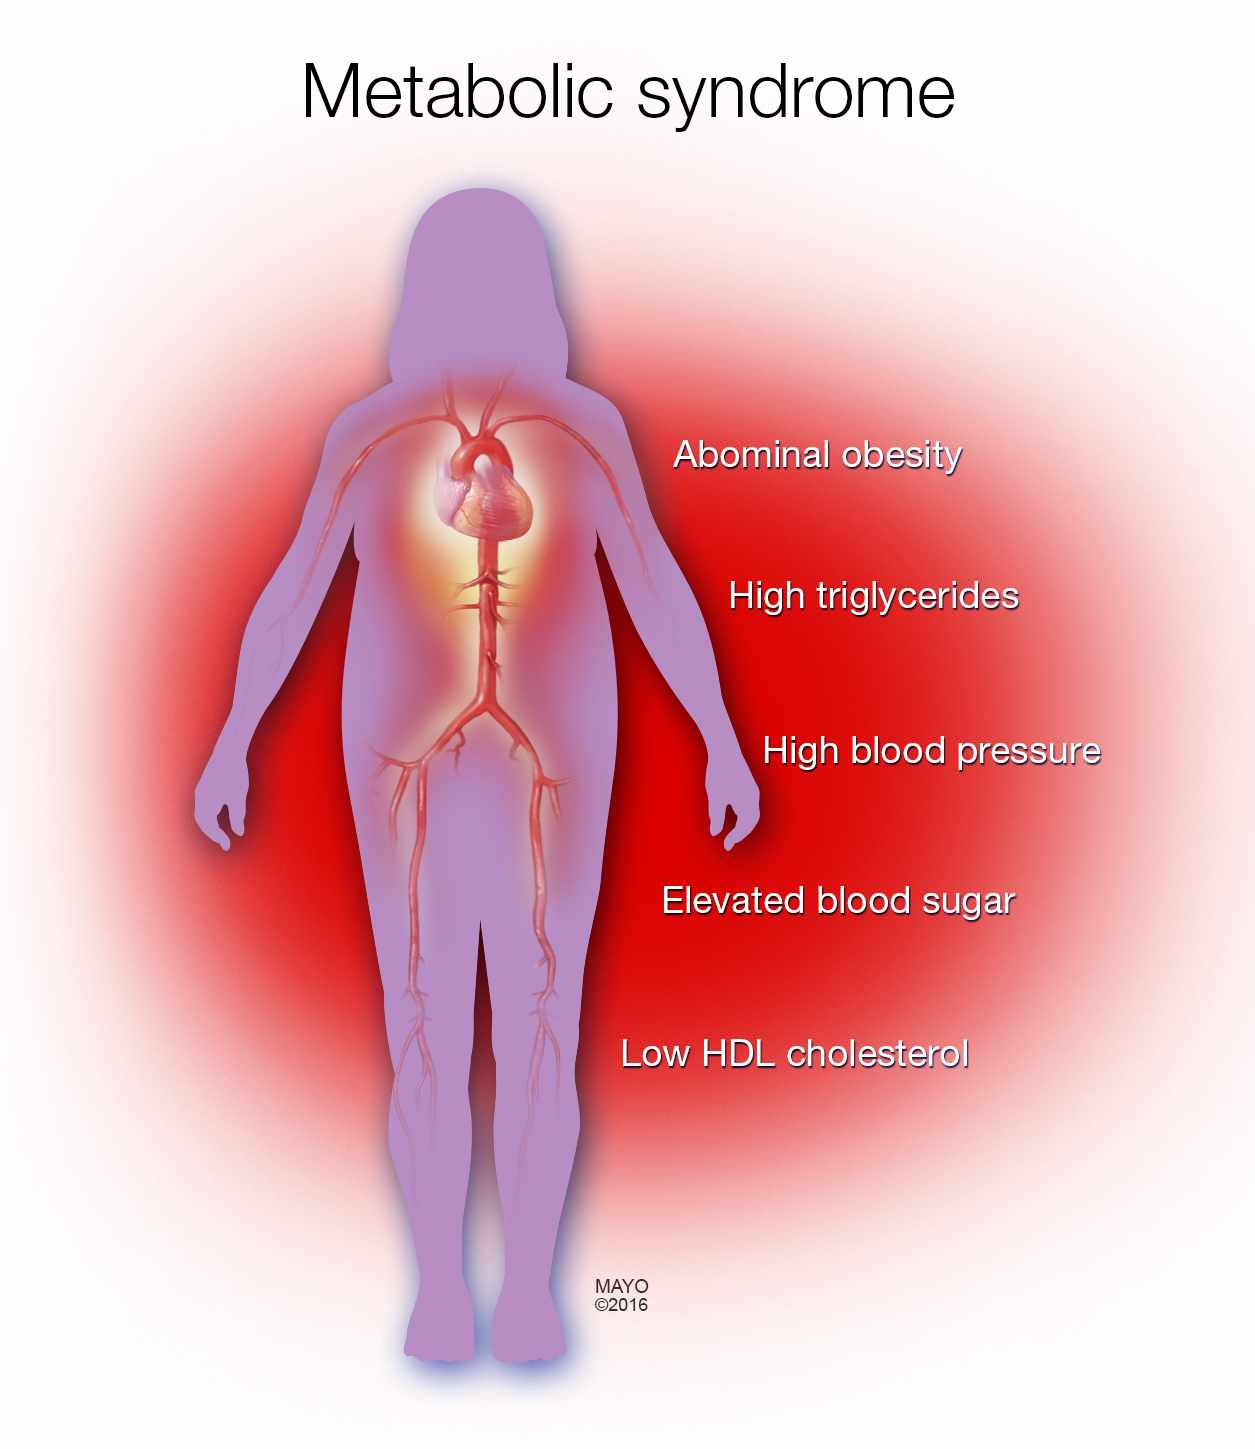 medical illustration of woman's body with metabolic syndrome